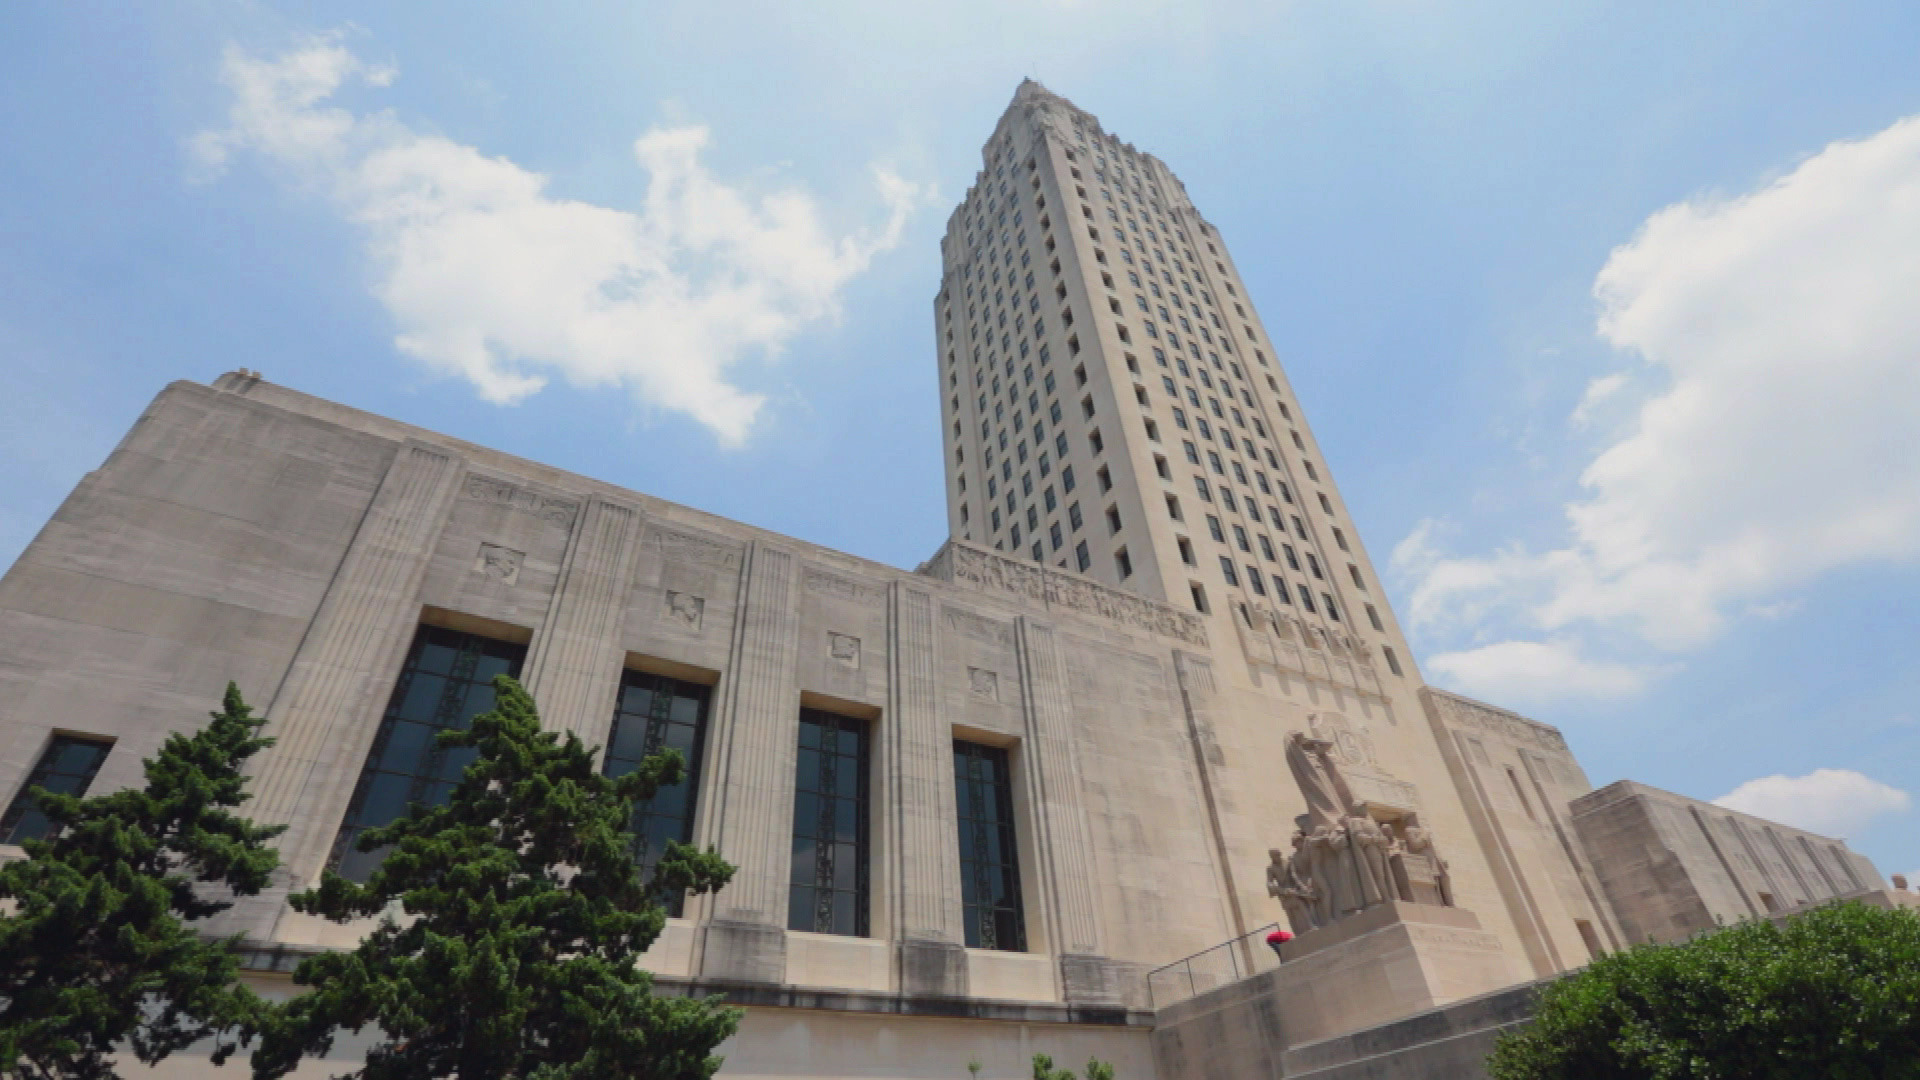 Louisiana state capital time lapse